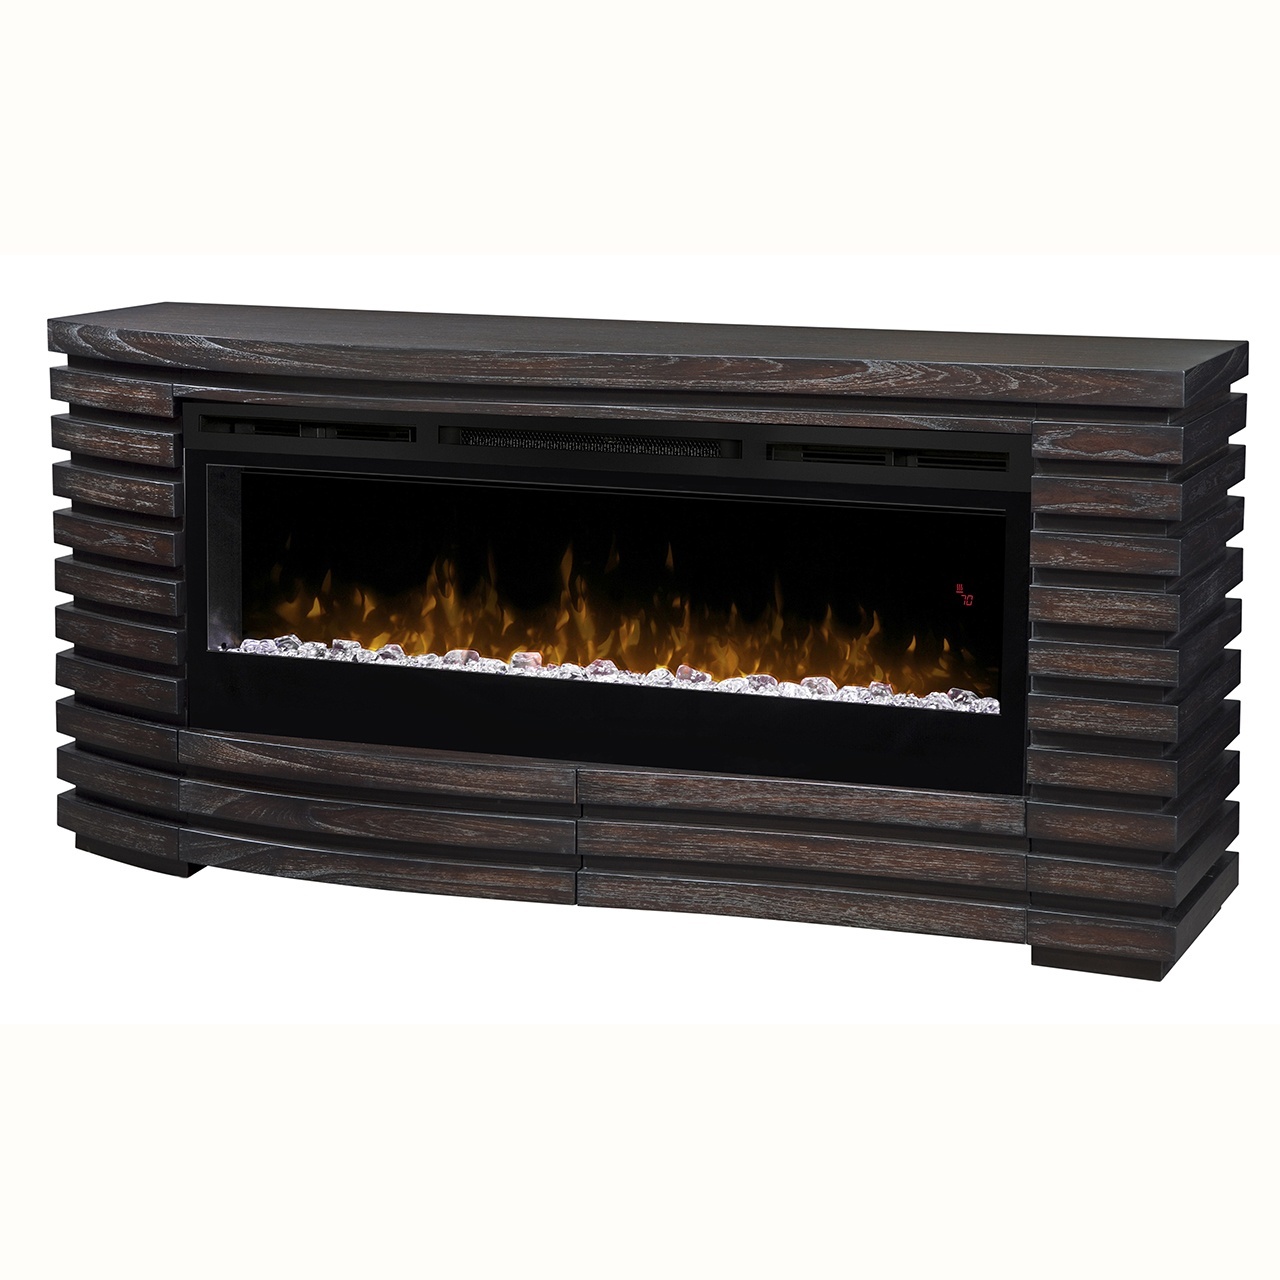 Dimplex Elliot Gds50g3 1587ht Electric Fireplace Wall Mantel Electric Fireplaces